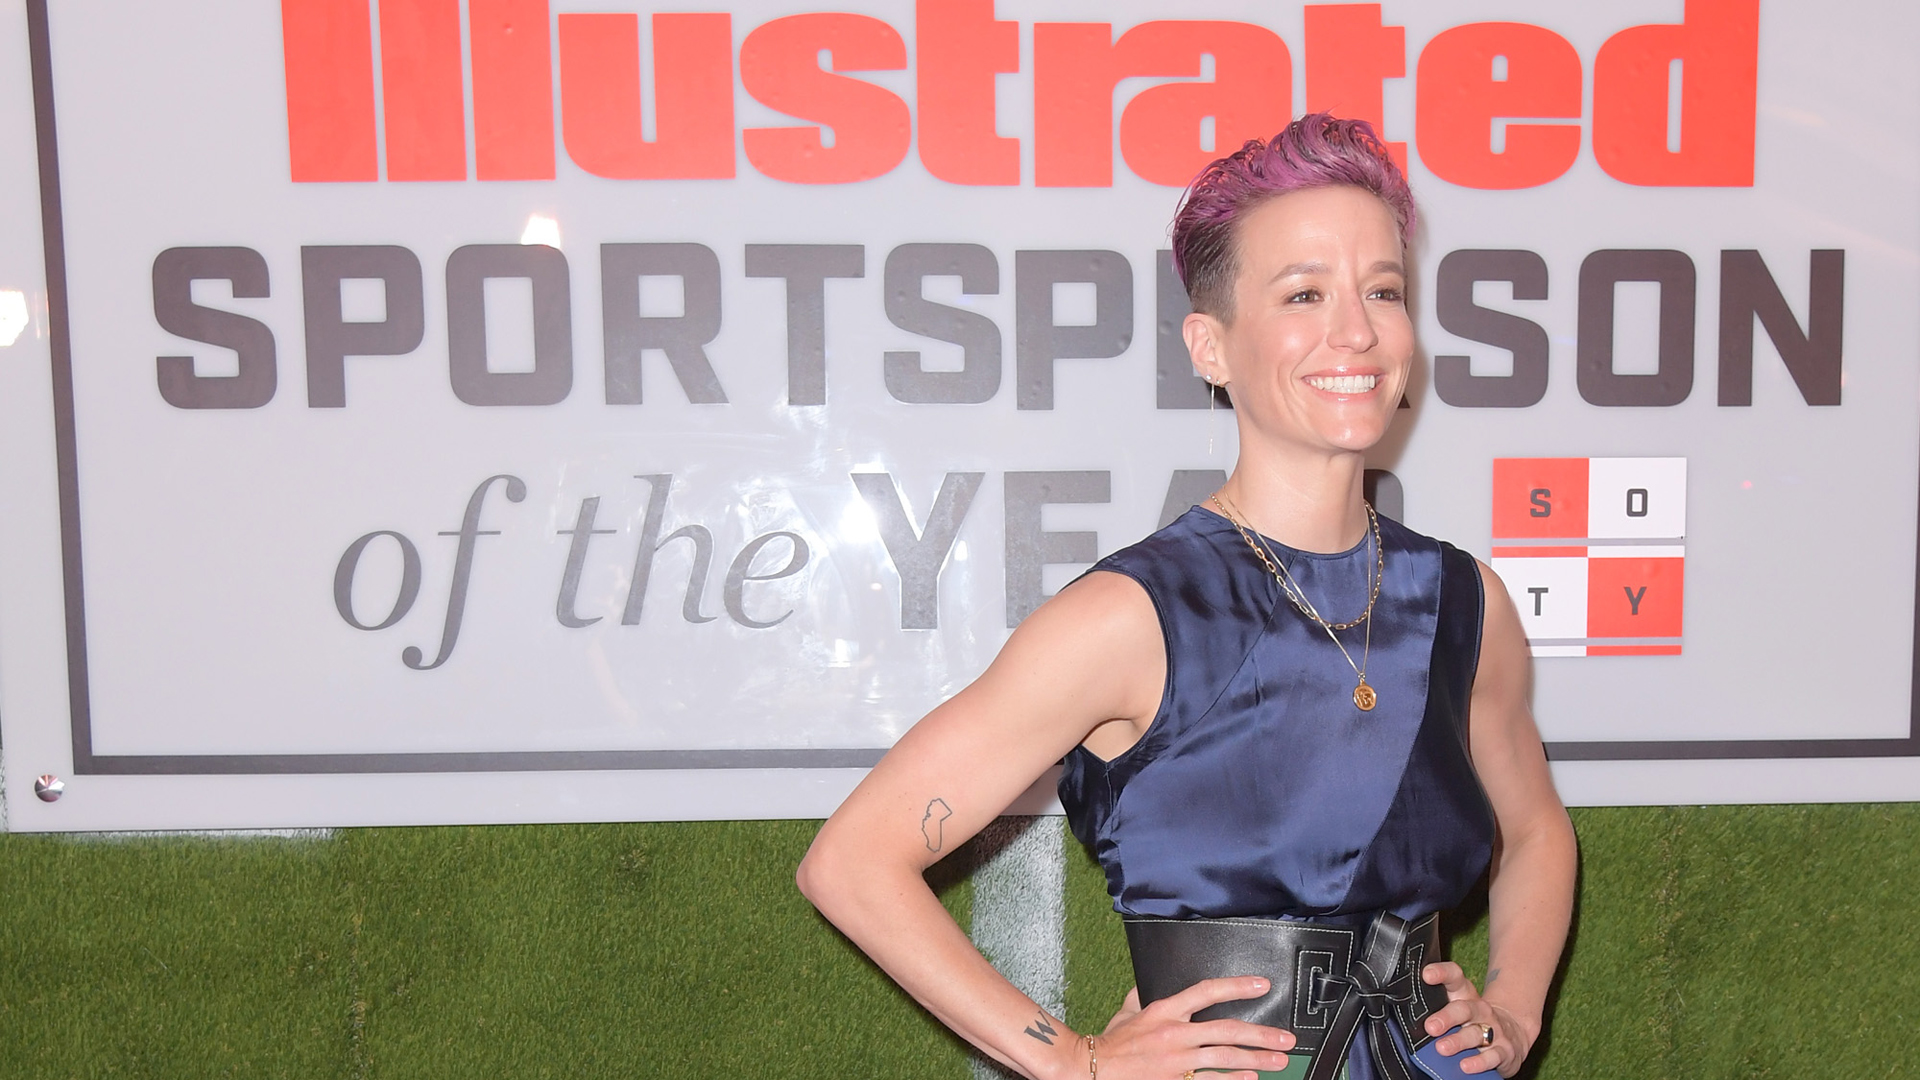 Professional Soccer Player Megan Rapinoe attends the 2019 Sports Illustrated Sportsperson Of The Year at The Ziegfeld Ballroom in New York City on Dec. 9, 2019 (Credit: Michael Loccisano/Getty Images)